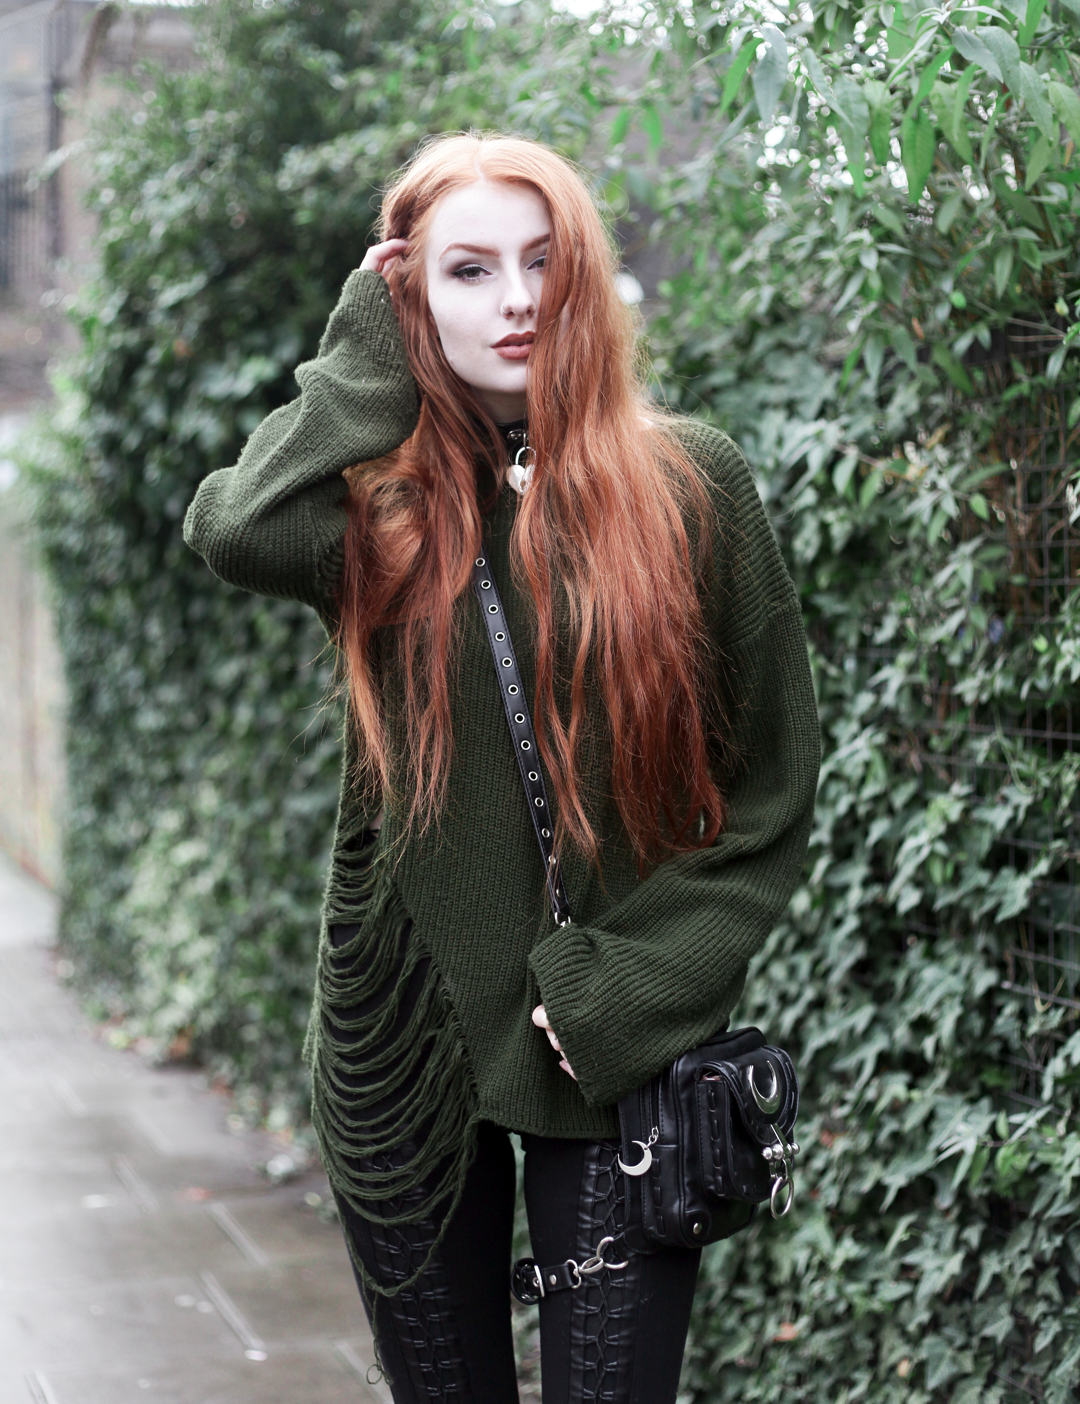 Olivia Emily wears Asos Bones Oversized jumper, Restyle pl harness bag, Stylestalker lace up leggings trousers, and Killstar Emily Padlock choker collar